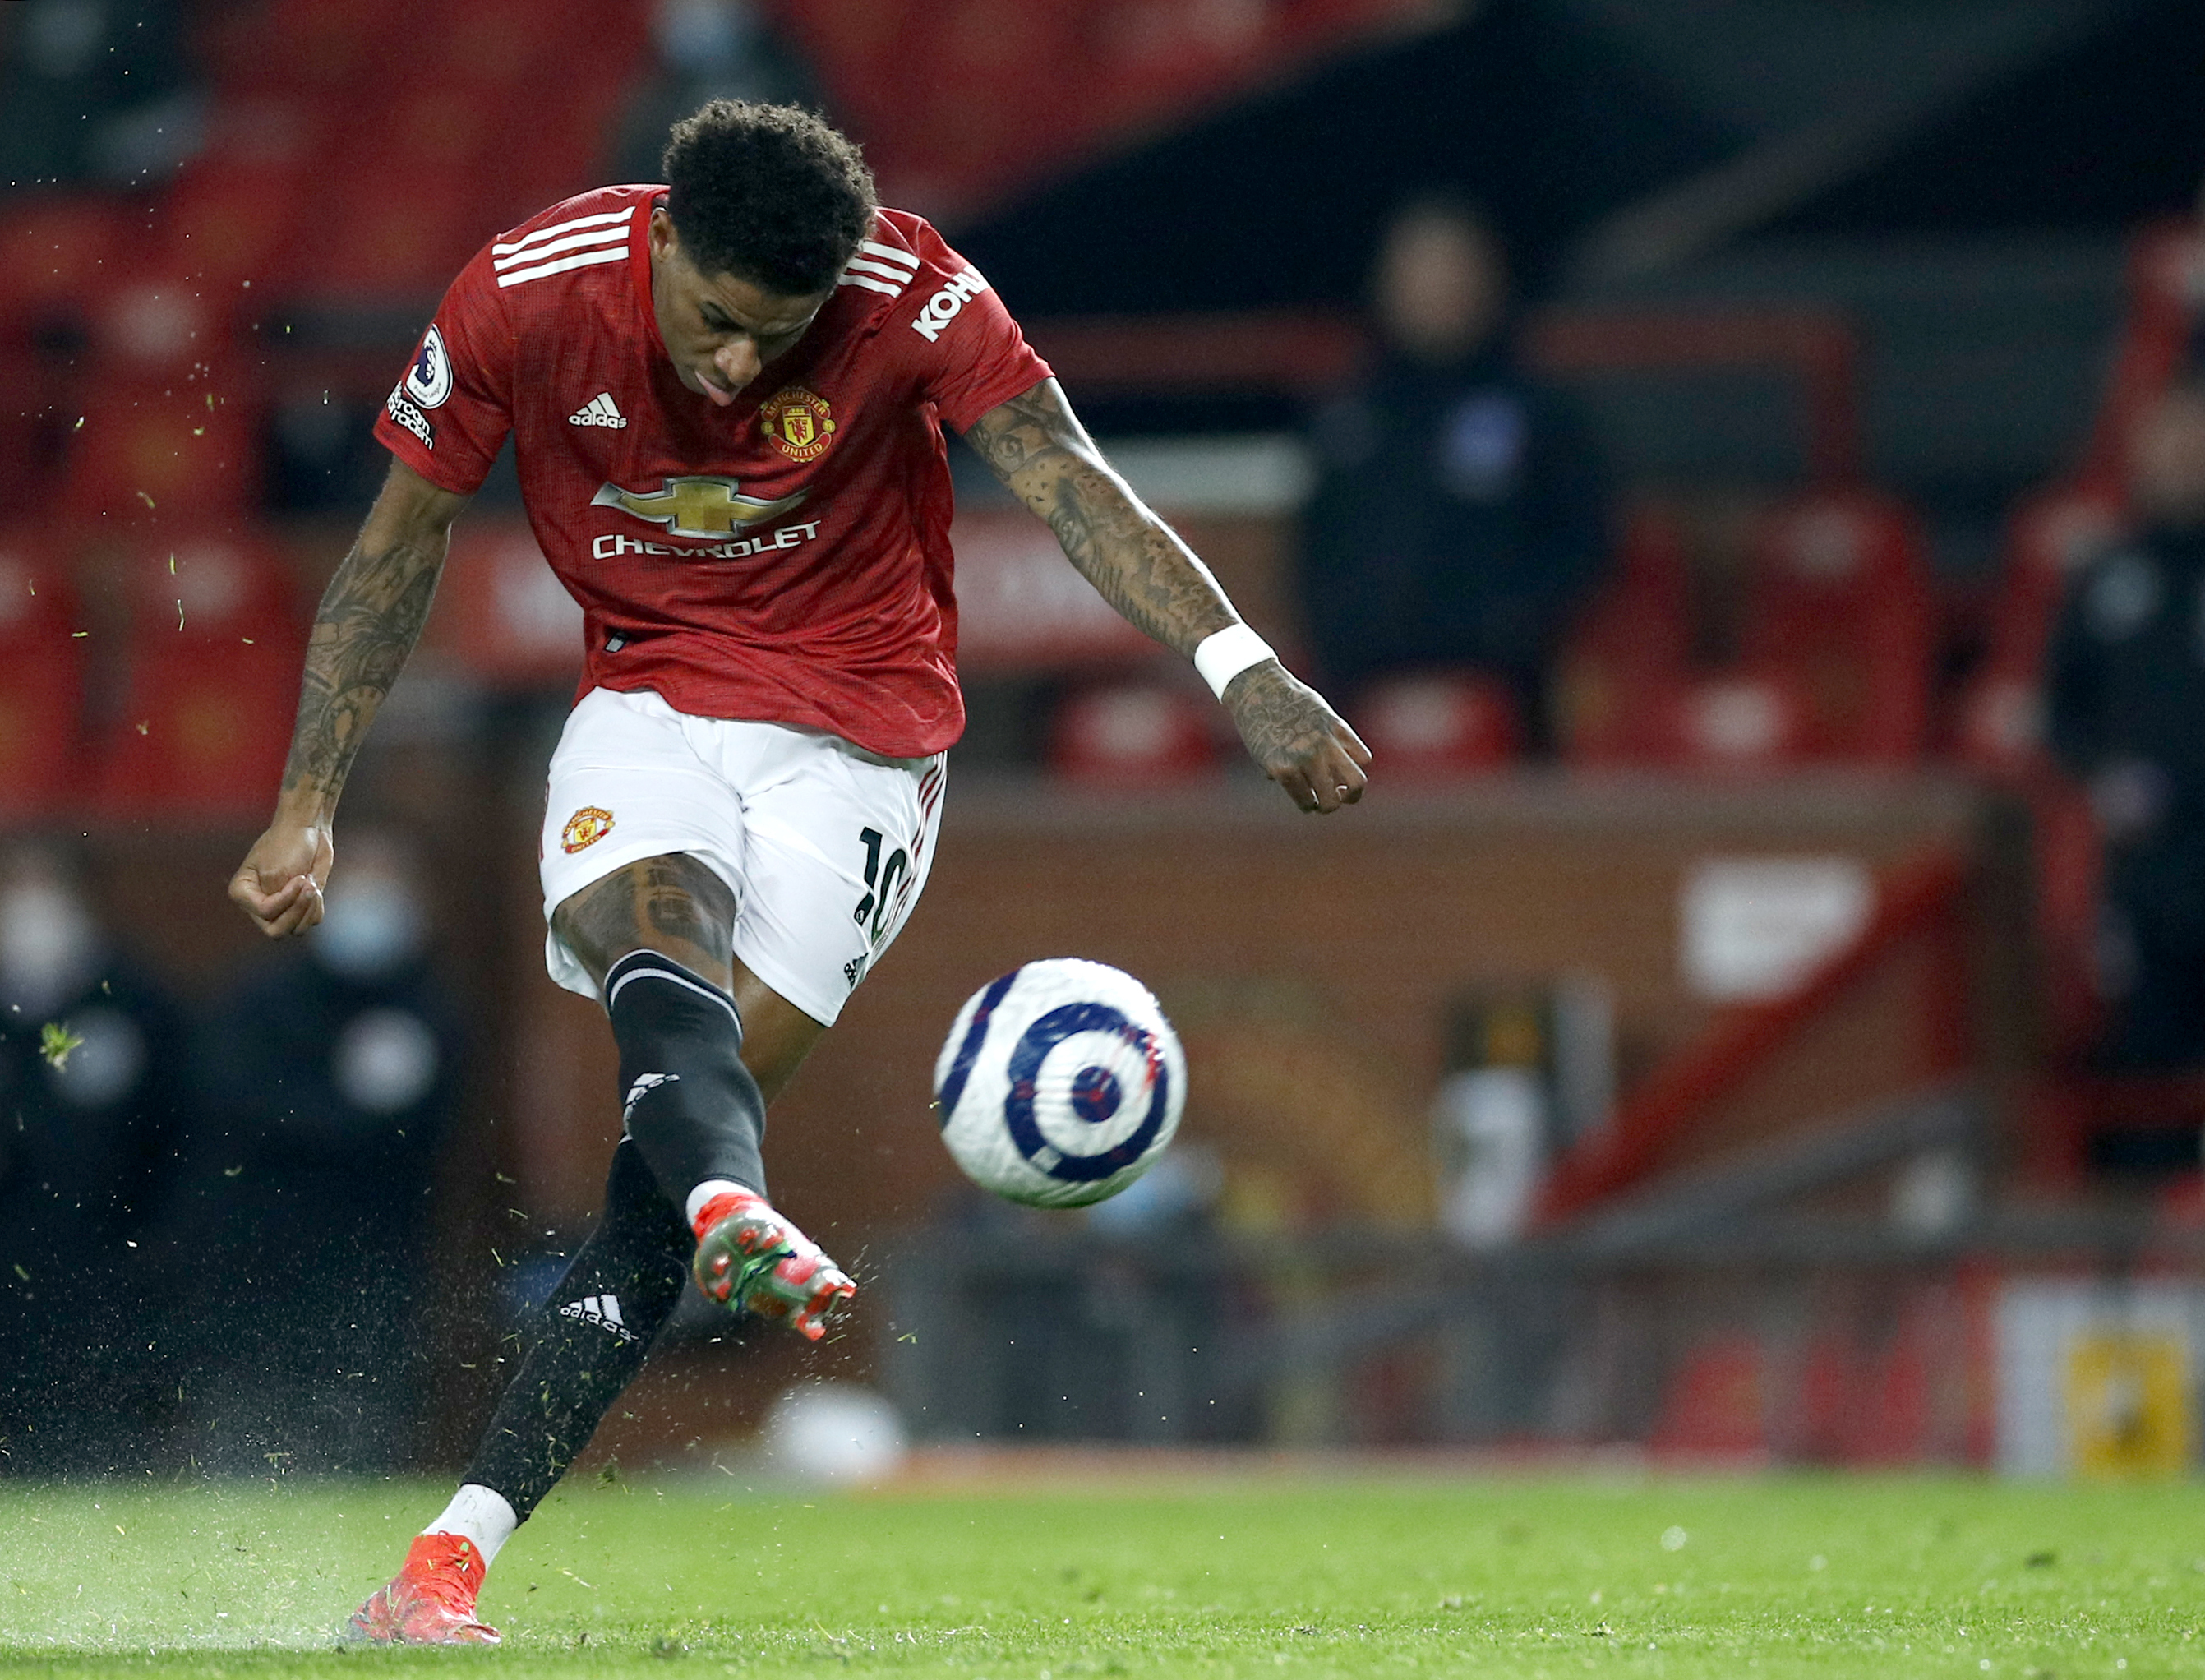 <p>Manchester United's Marcus Rashford has a shot at goal during the Premier League match at Old Trafford, Manchester. Picture date: Sunday April 4, 2021.</p>